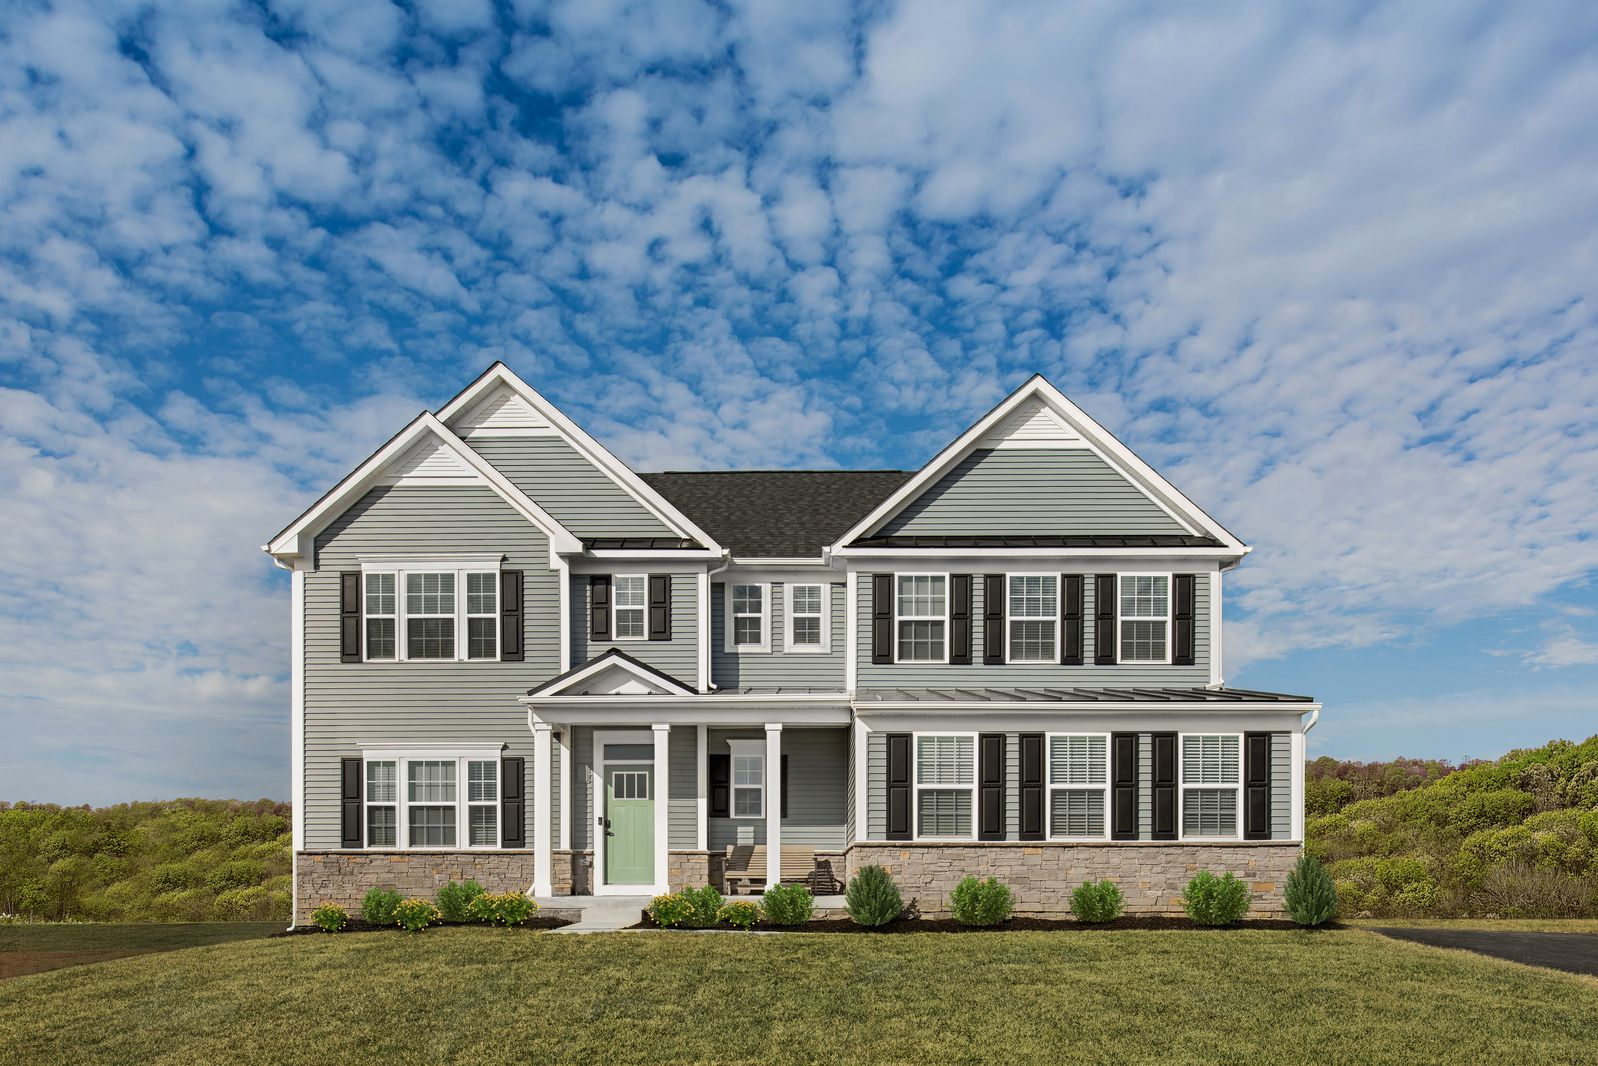 Welcome to Monarch Woods:New estate homes with side-entry garages on 1+ acre wooded homesites in Lenape Regional School District.Click here to schedule your appointment today!